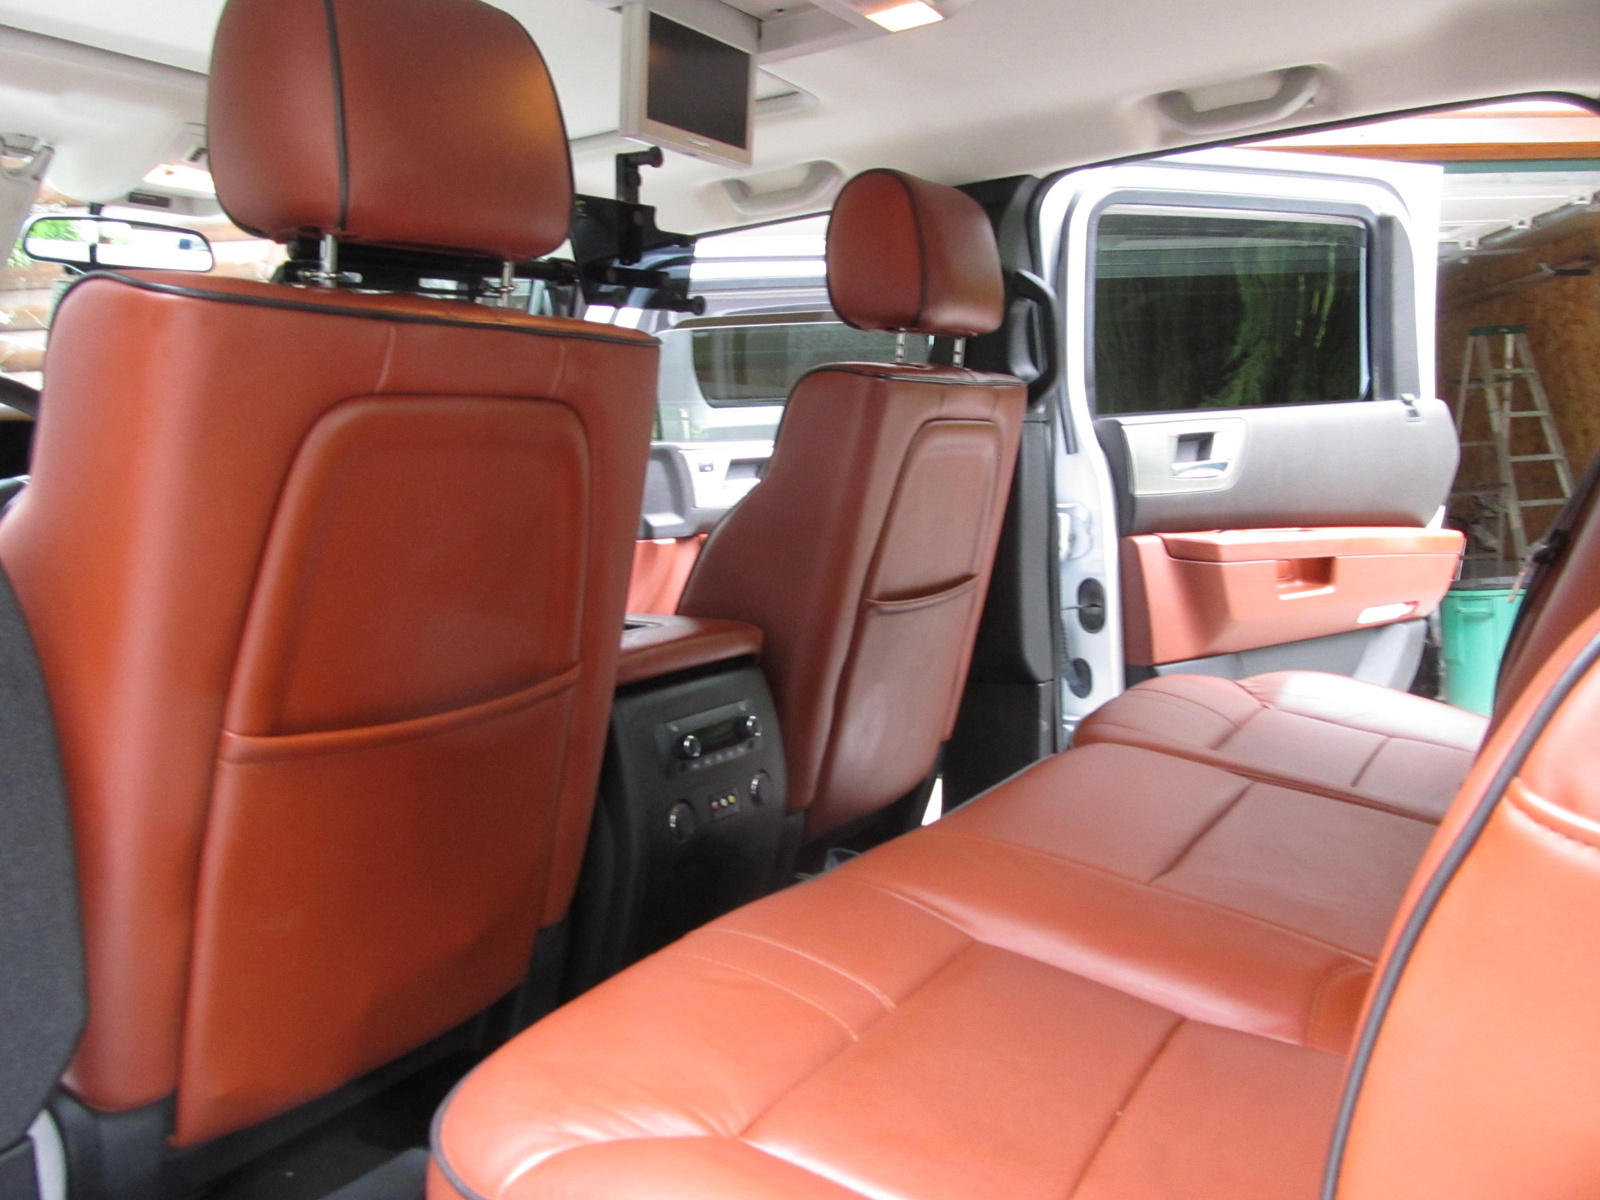 2008 HUMMER H2 SUT Information and photos MOMENTcar